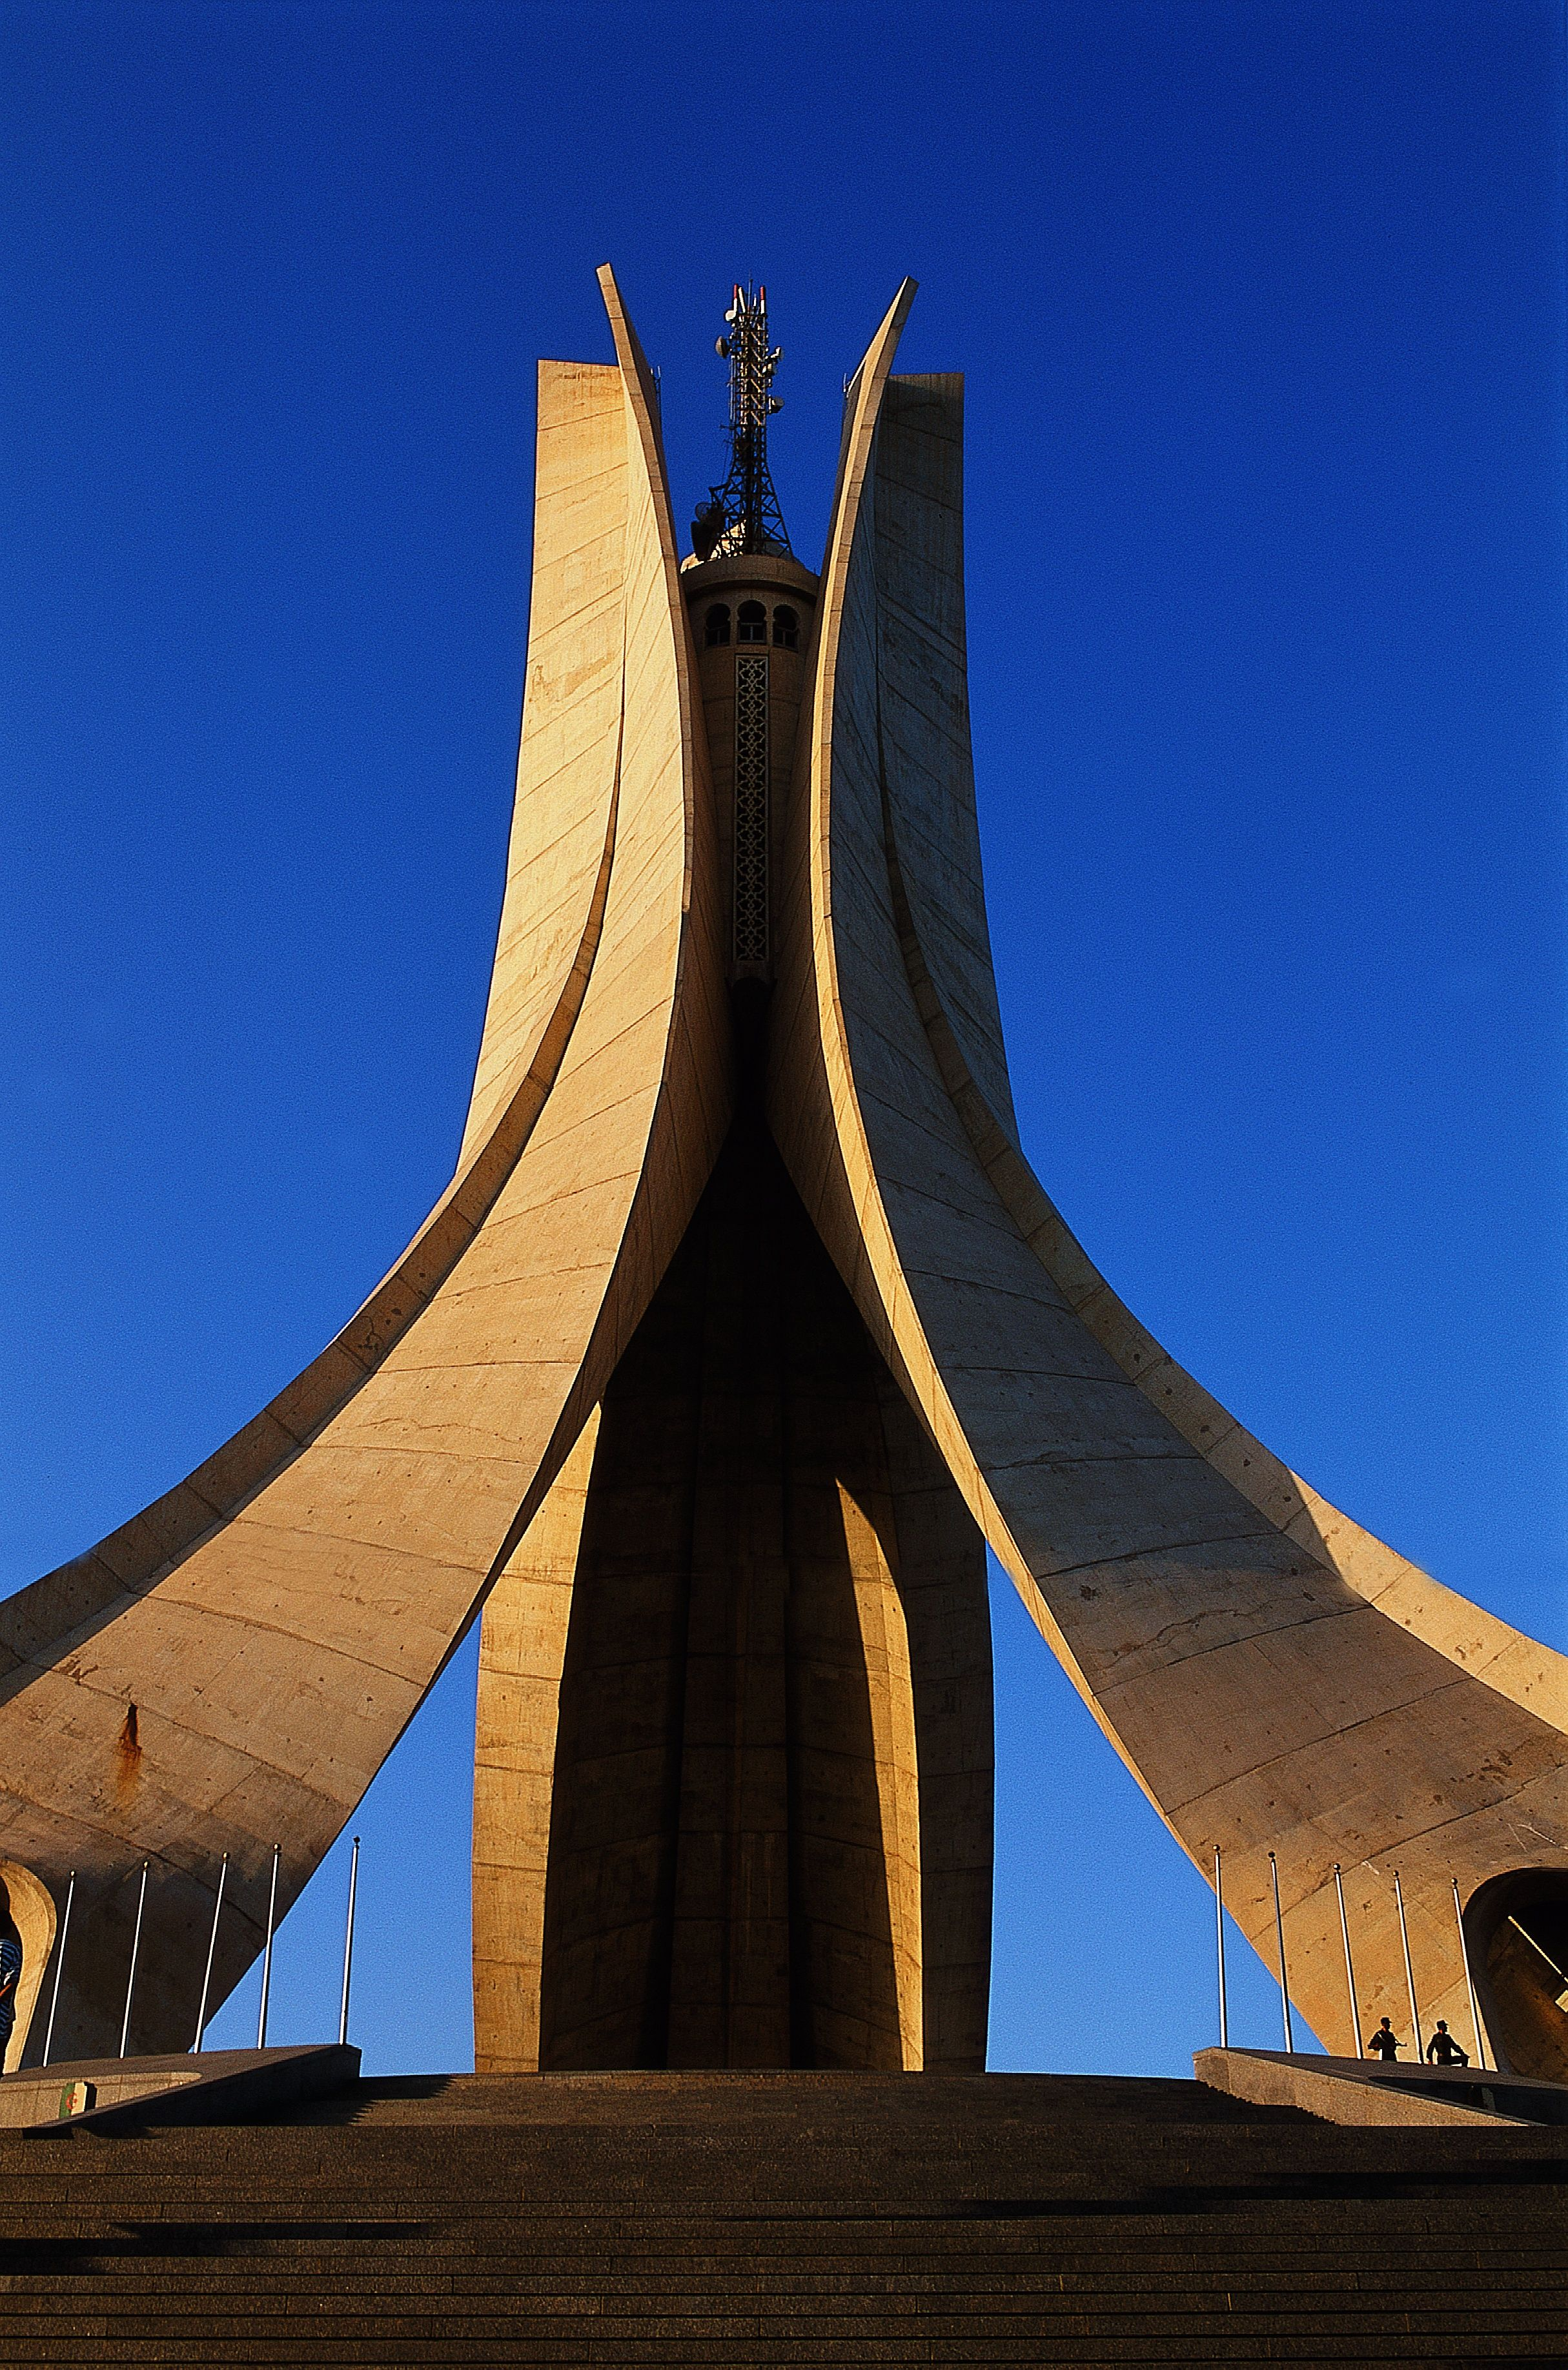 The Maqam Echahid An Iconic Concrete Monument Commemorating The